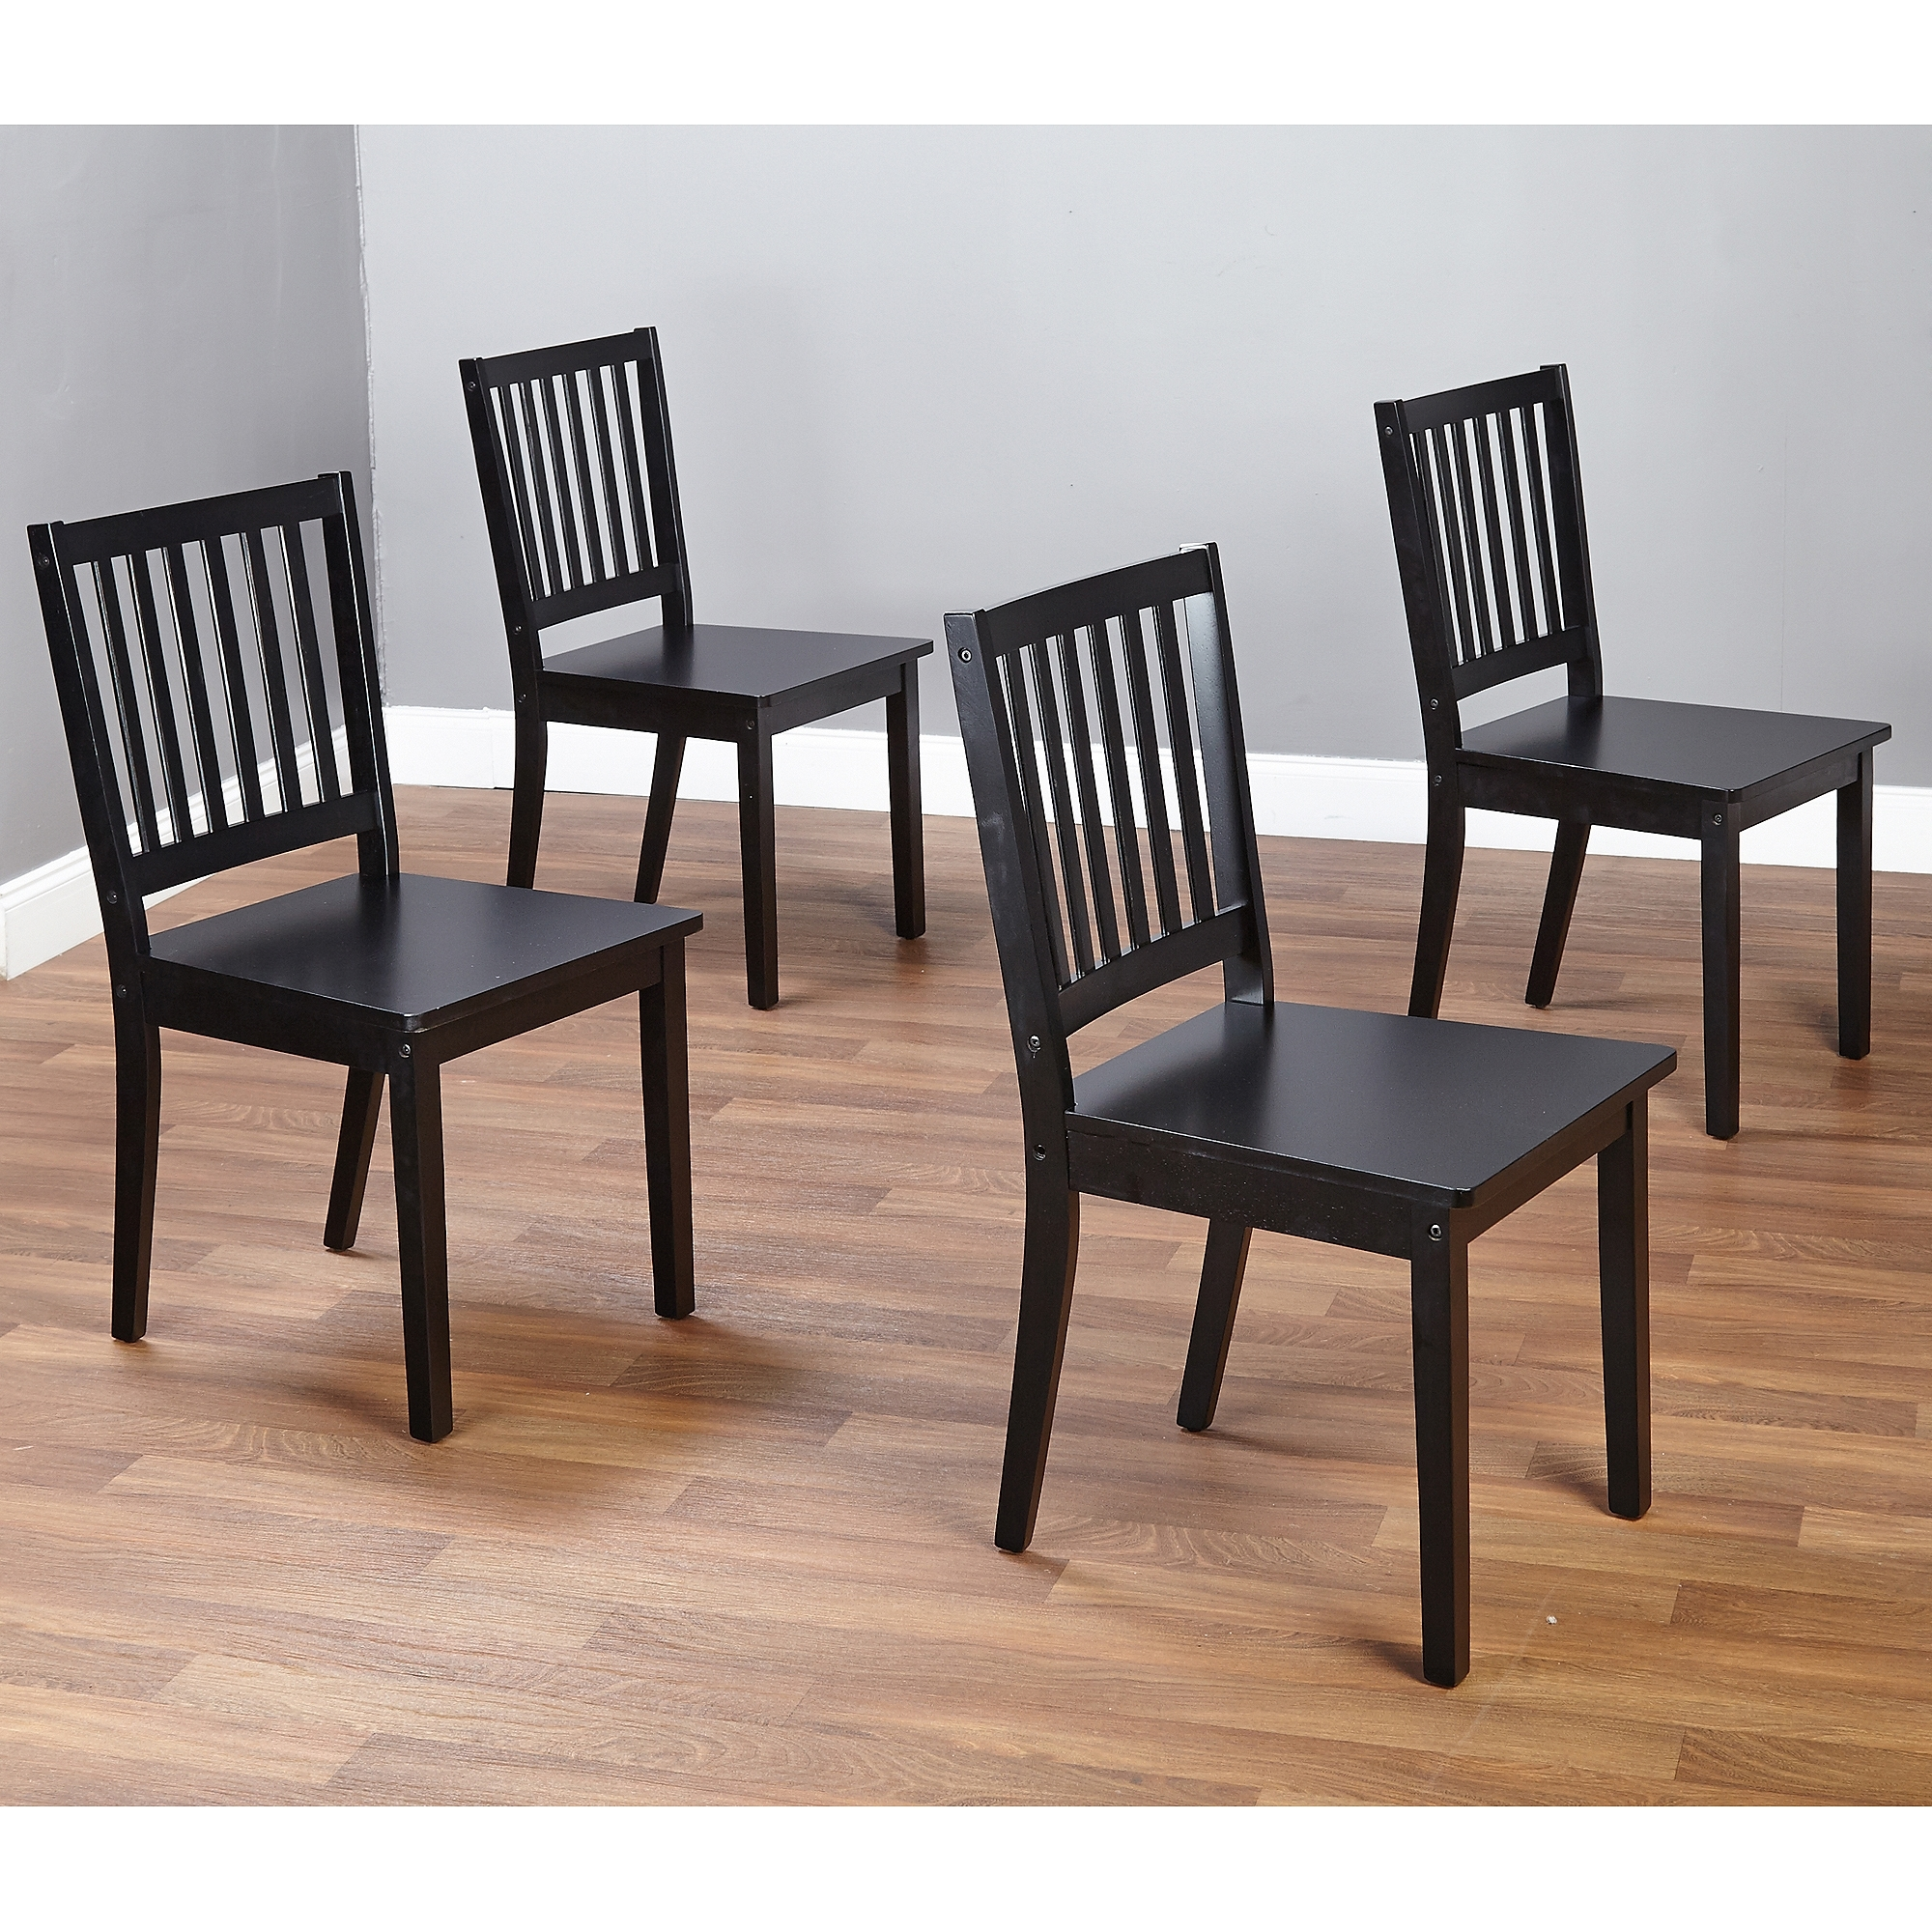 Widely Used Shaker Dining Chairs, Set Of 4, Espresso – Walmart For Dining Table Chair Sets (View 25 of 25)